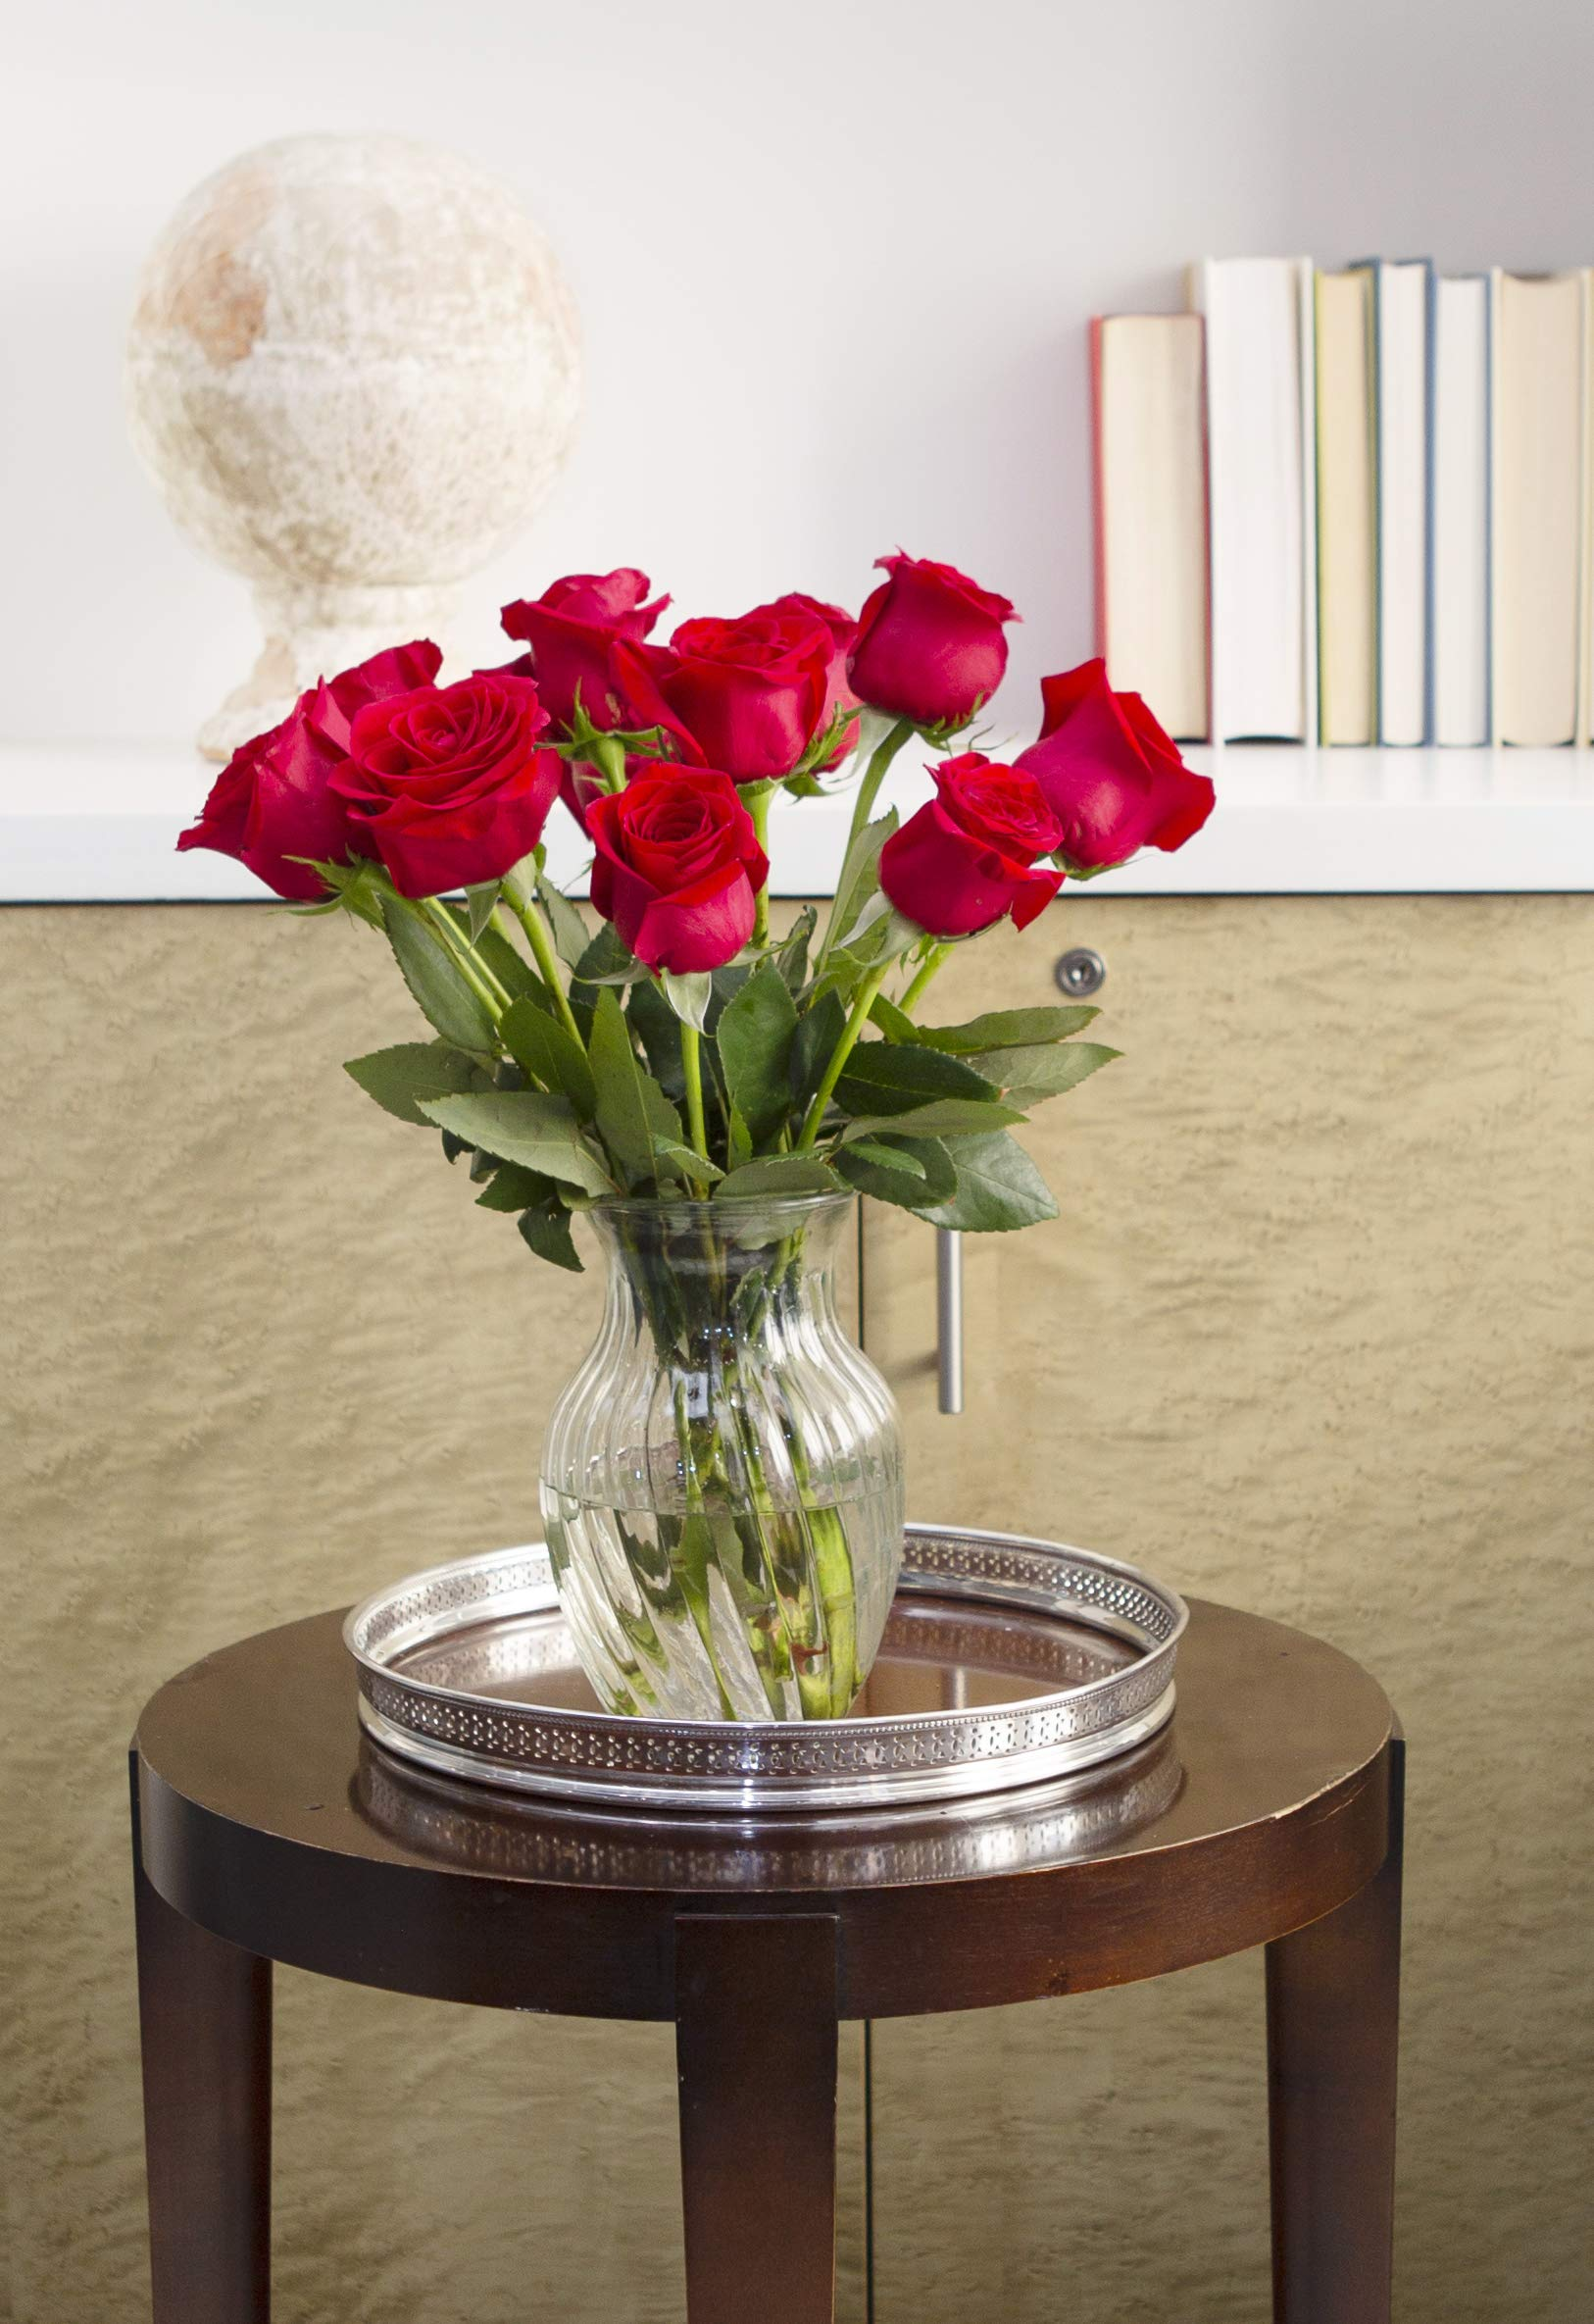 KaBloom The Romantic Classic Bouquet of 12 Fresh Red Roses (Farm-Fresh, Long-Stem) by KaBloom (Image #6)